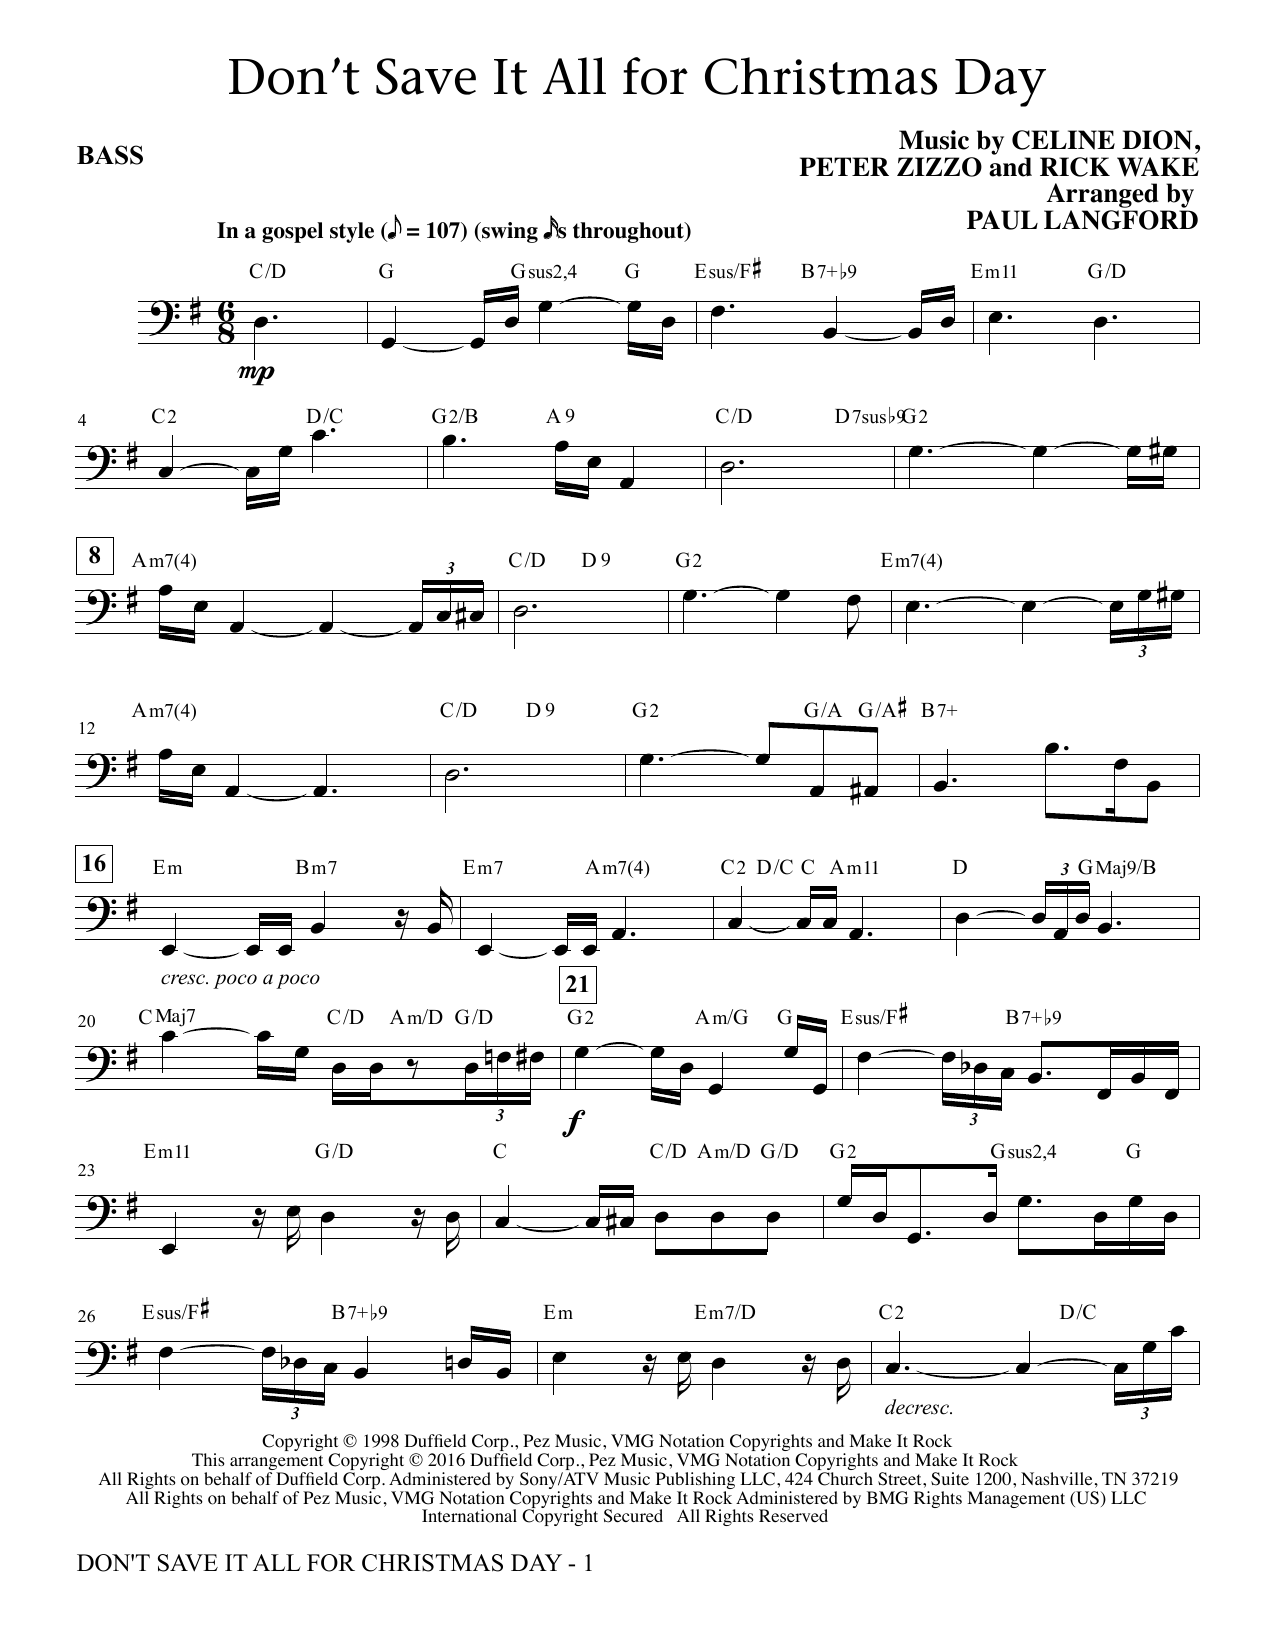 Paul Langford Don't Save It All for Christmas Day - Bass sheet music notes and chords. Download Printable PDF.